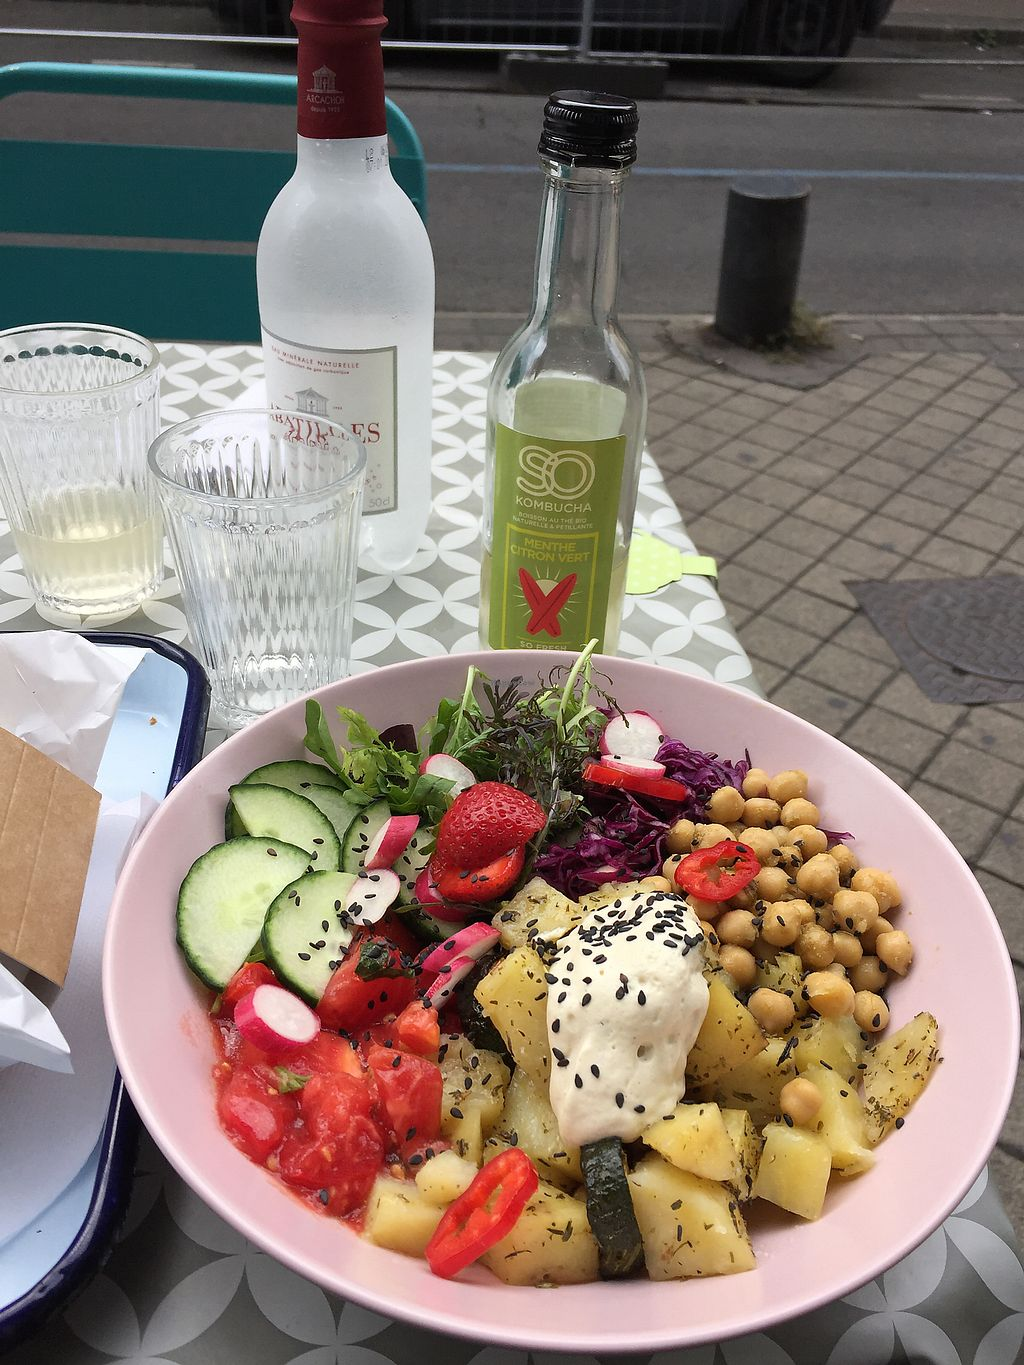 """Photo of Munchies  by <a href=""""/members/profile/happydkt"""">happydkt</a> <br/>Veg plate August 2017 - so tasty !  <br/> September 1, 2017  - <a href='/contact/abuse/image/81024/299619'>Report</a>"""